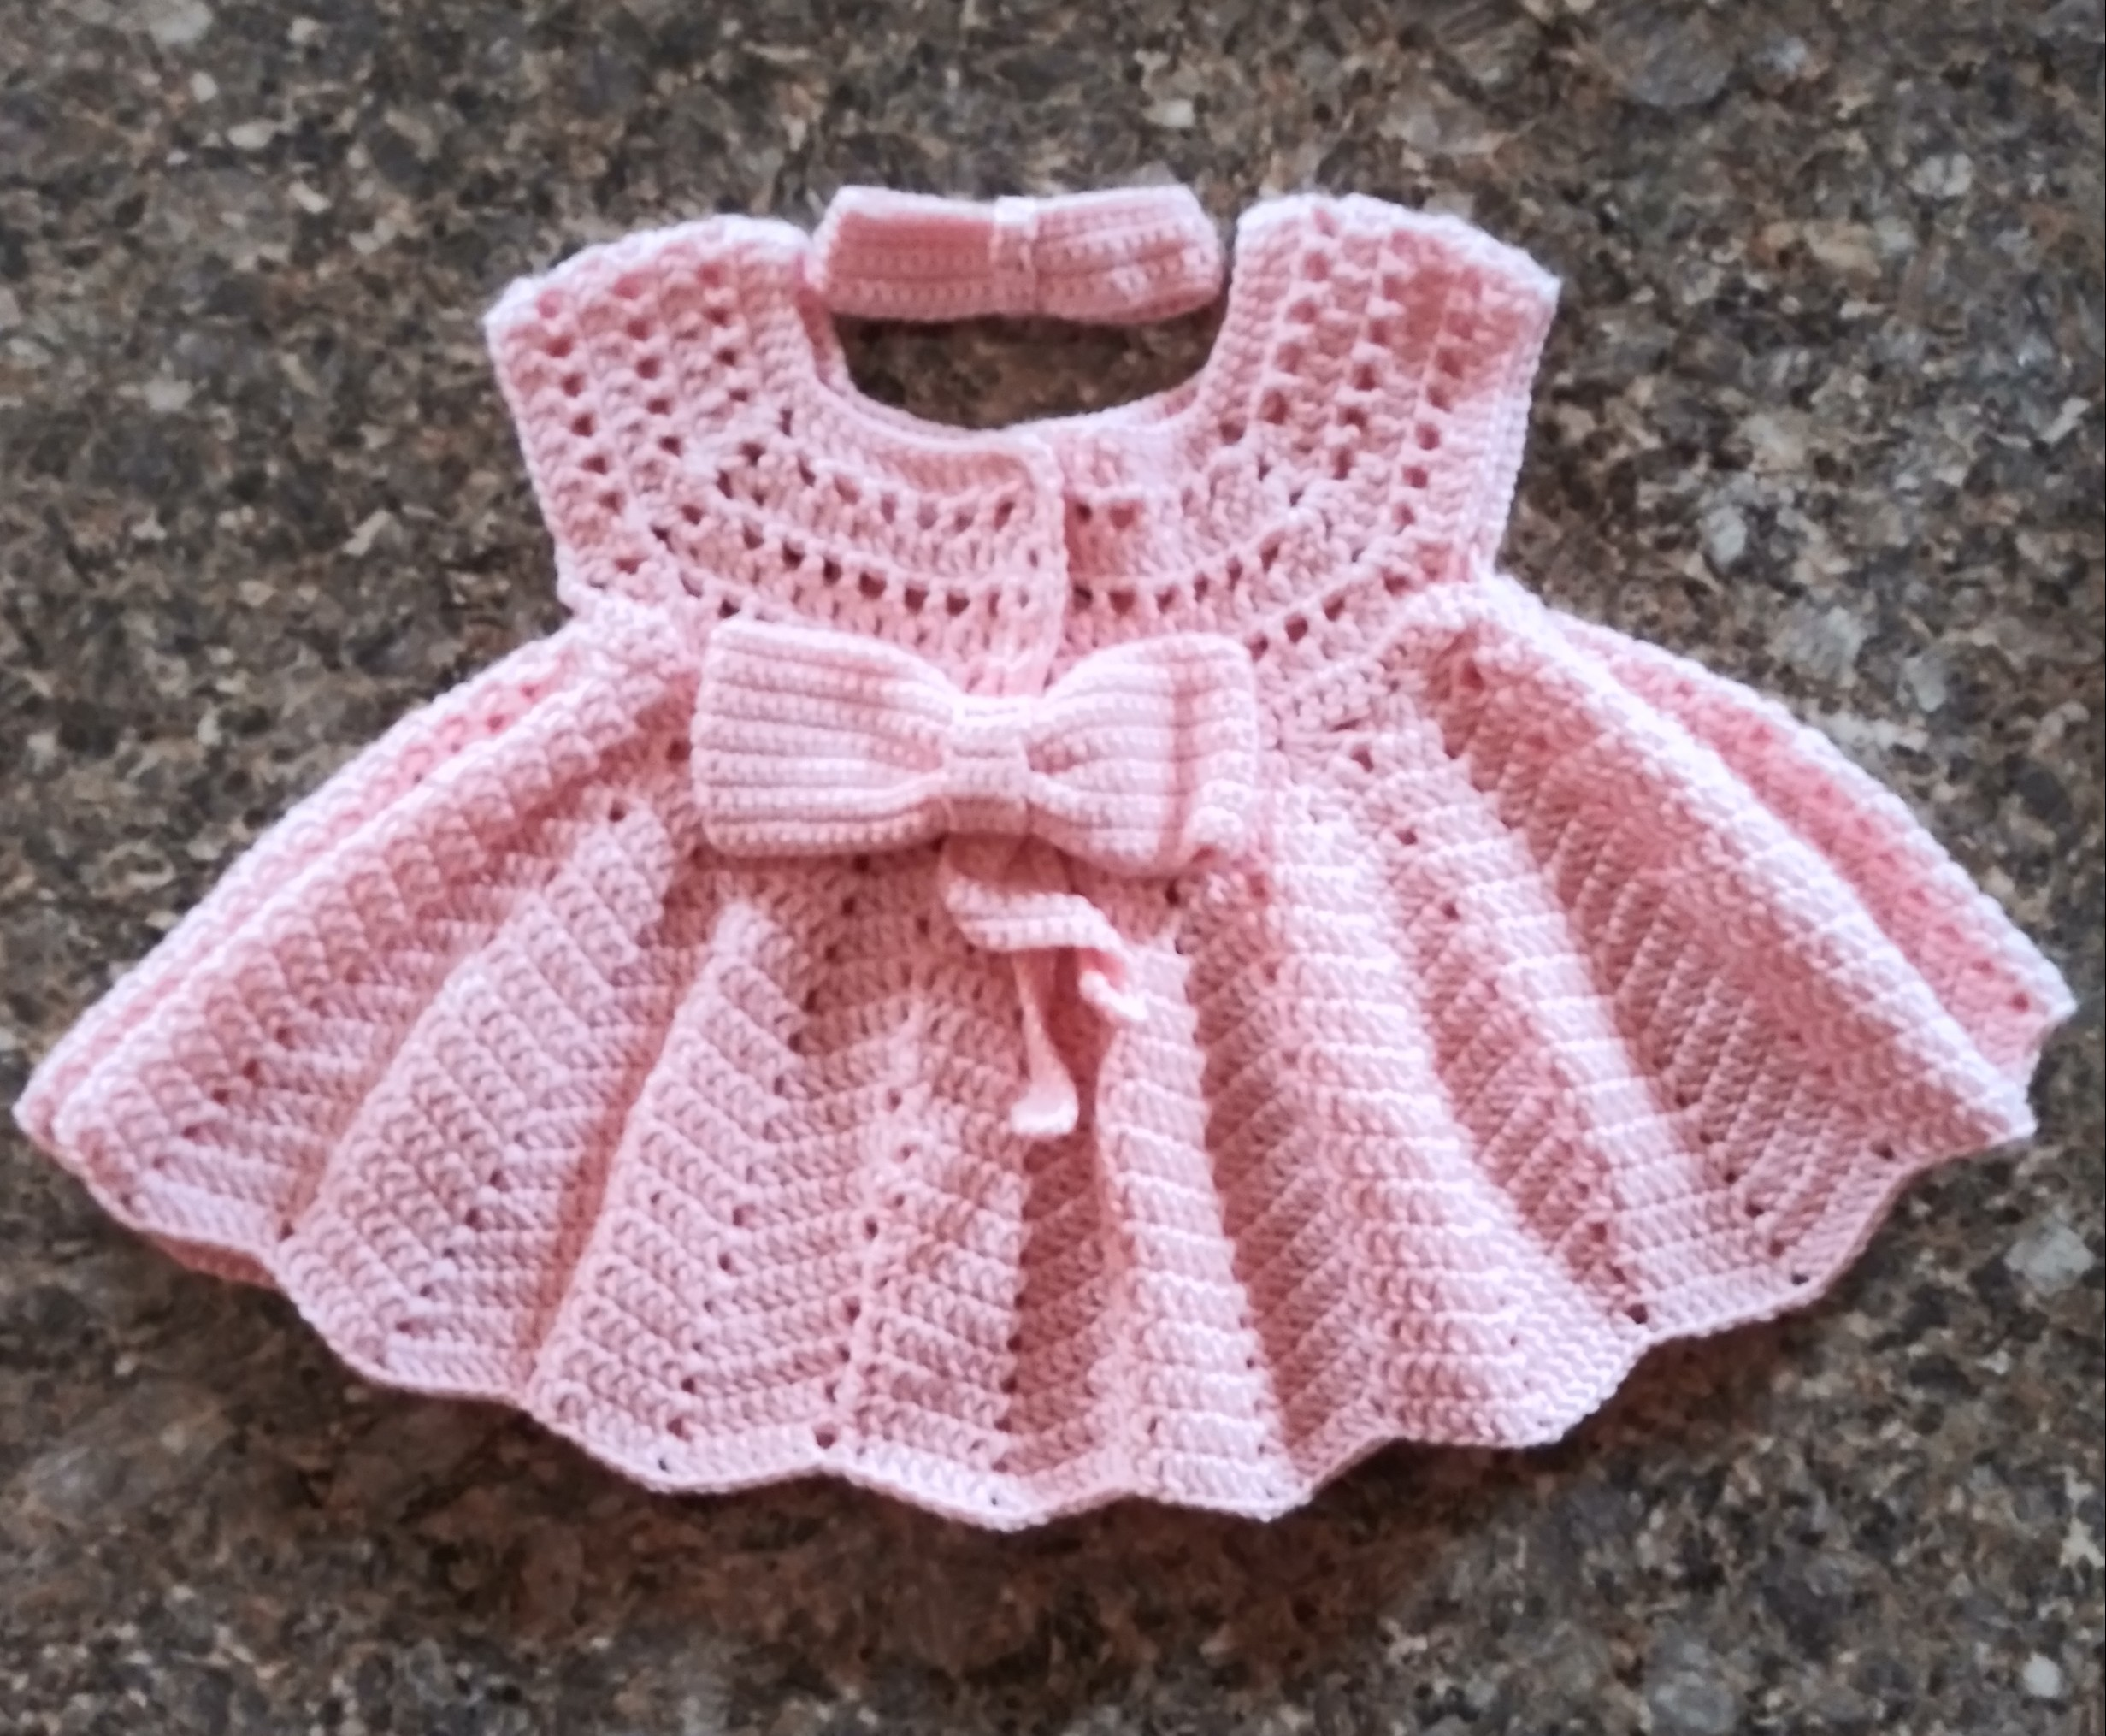 Pink tank-top baby dress with barrette